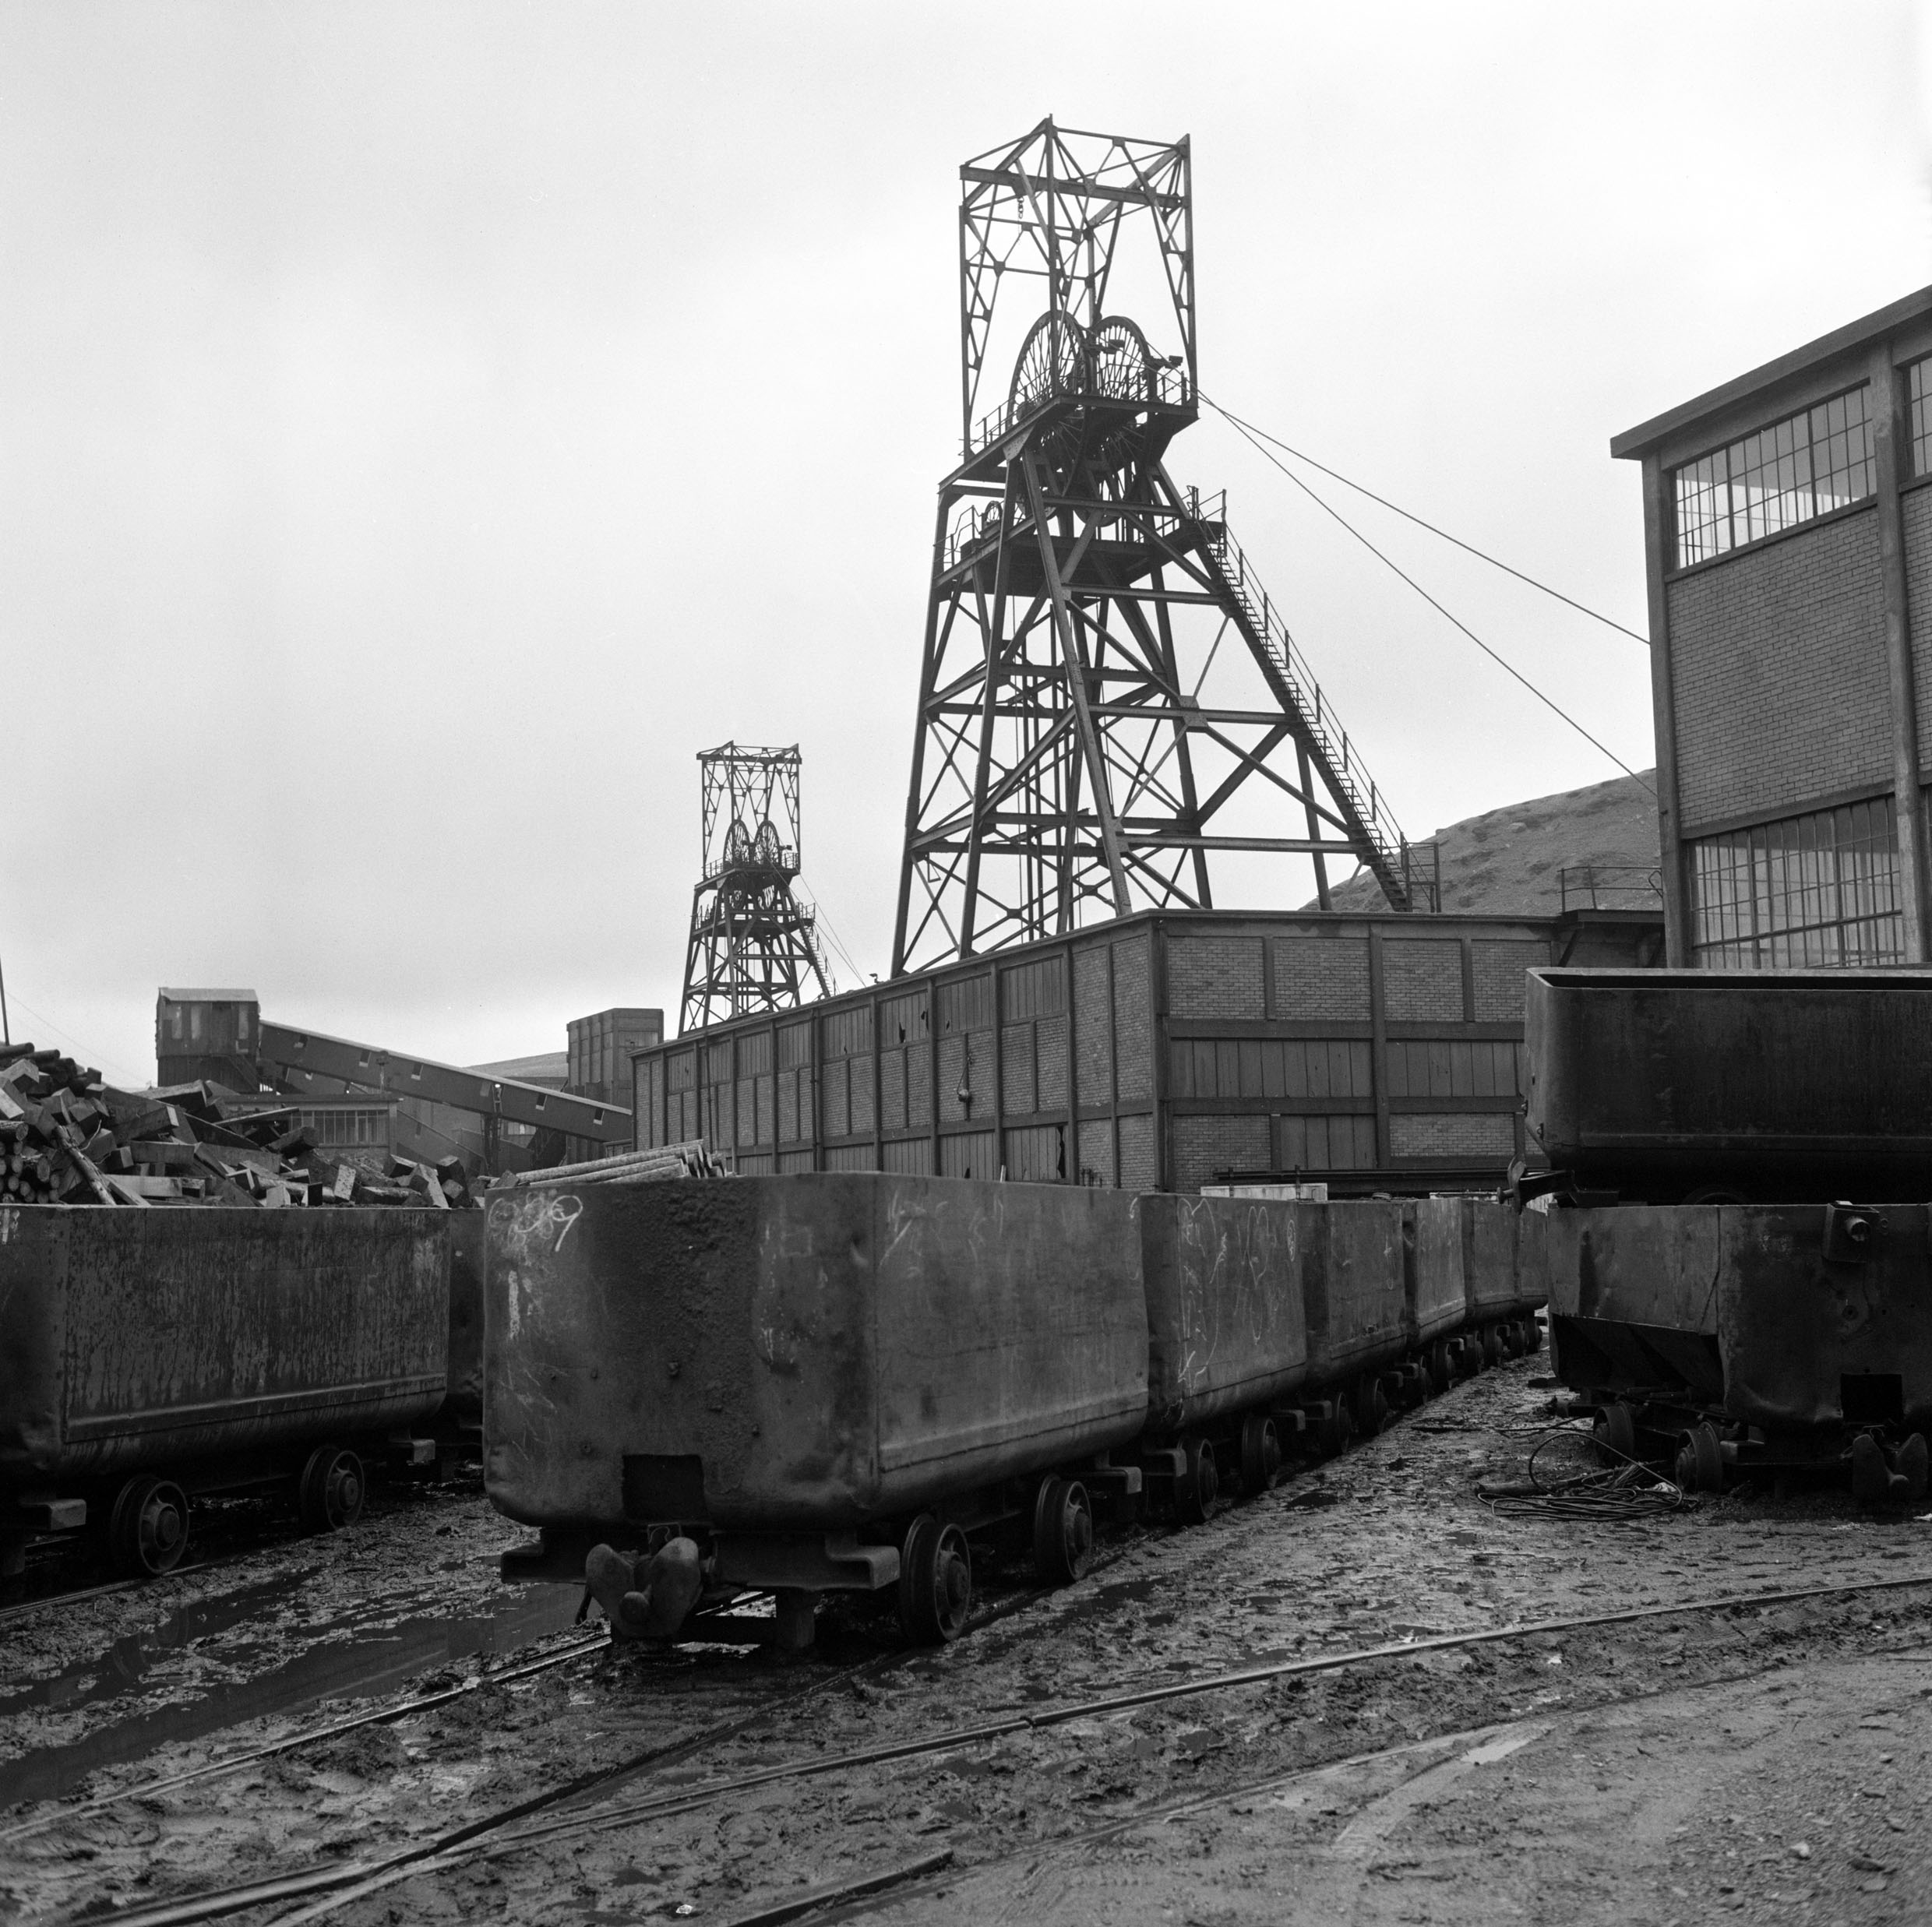 Maerdy Colliery, 1977, empty mine cars waiting at pit top.